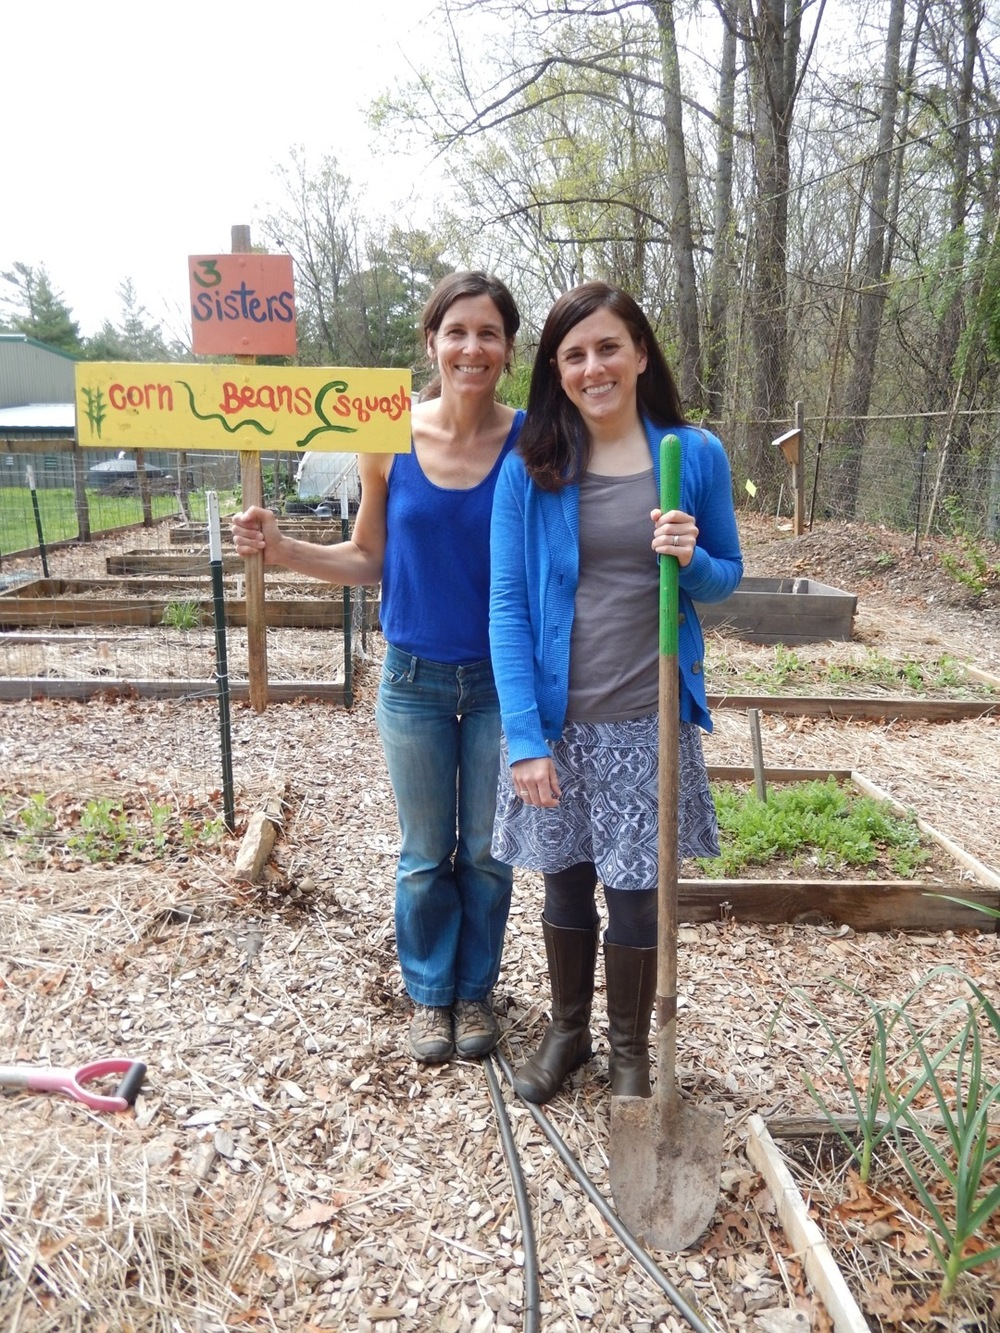 Marin Leroy, Evergreen's Environmental Education Program Coordinator and Carrie Pusey, Title 1 Support Teacher are on a learning adventure this summer to The Edible Schoolyard Institute in Berkeley, Ca.